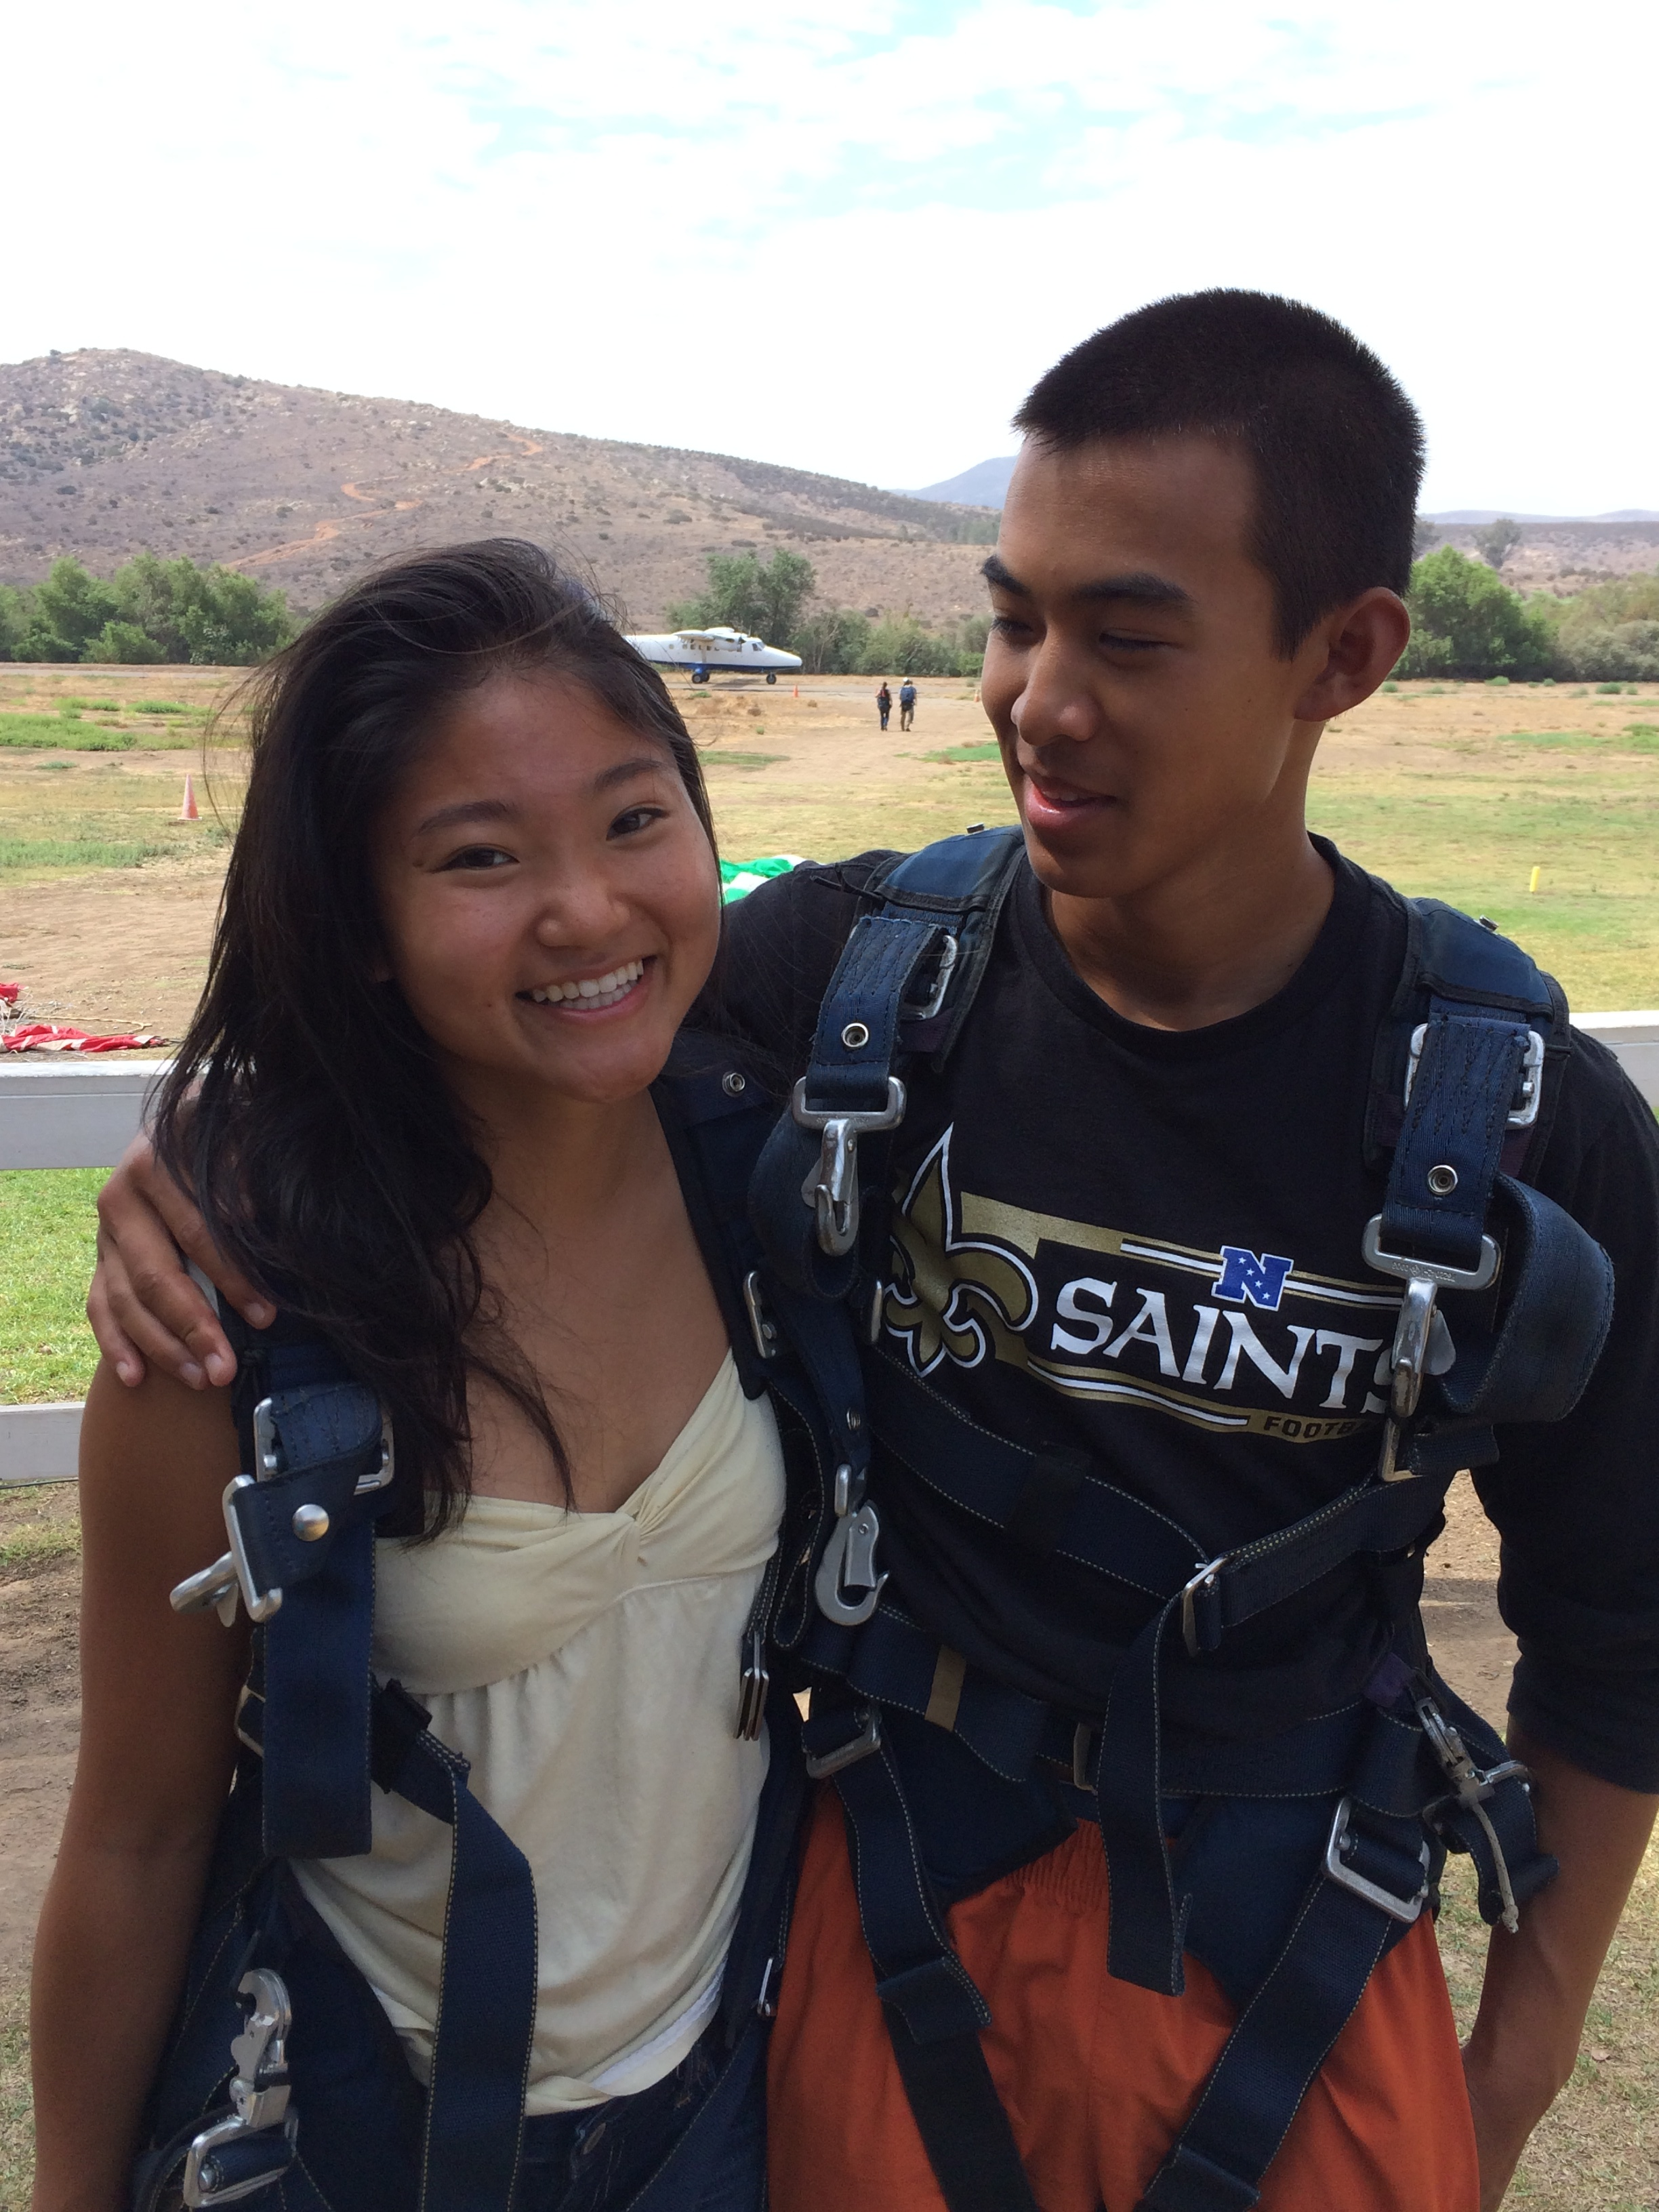 Skyjumping in San Diego - 2014